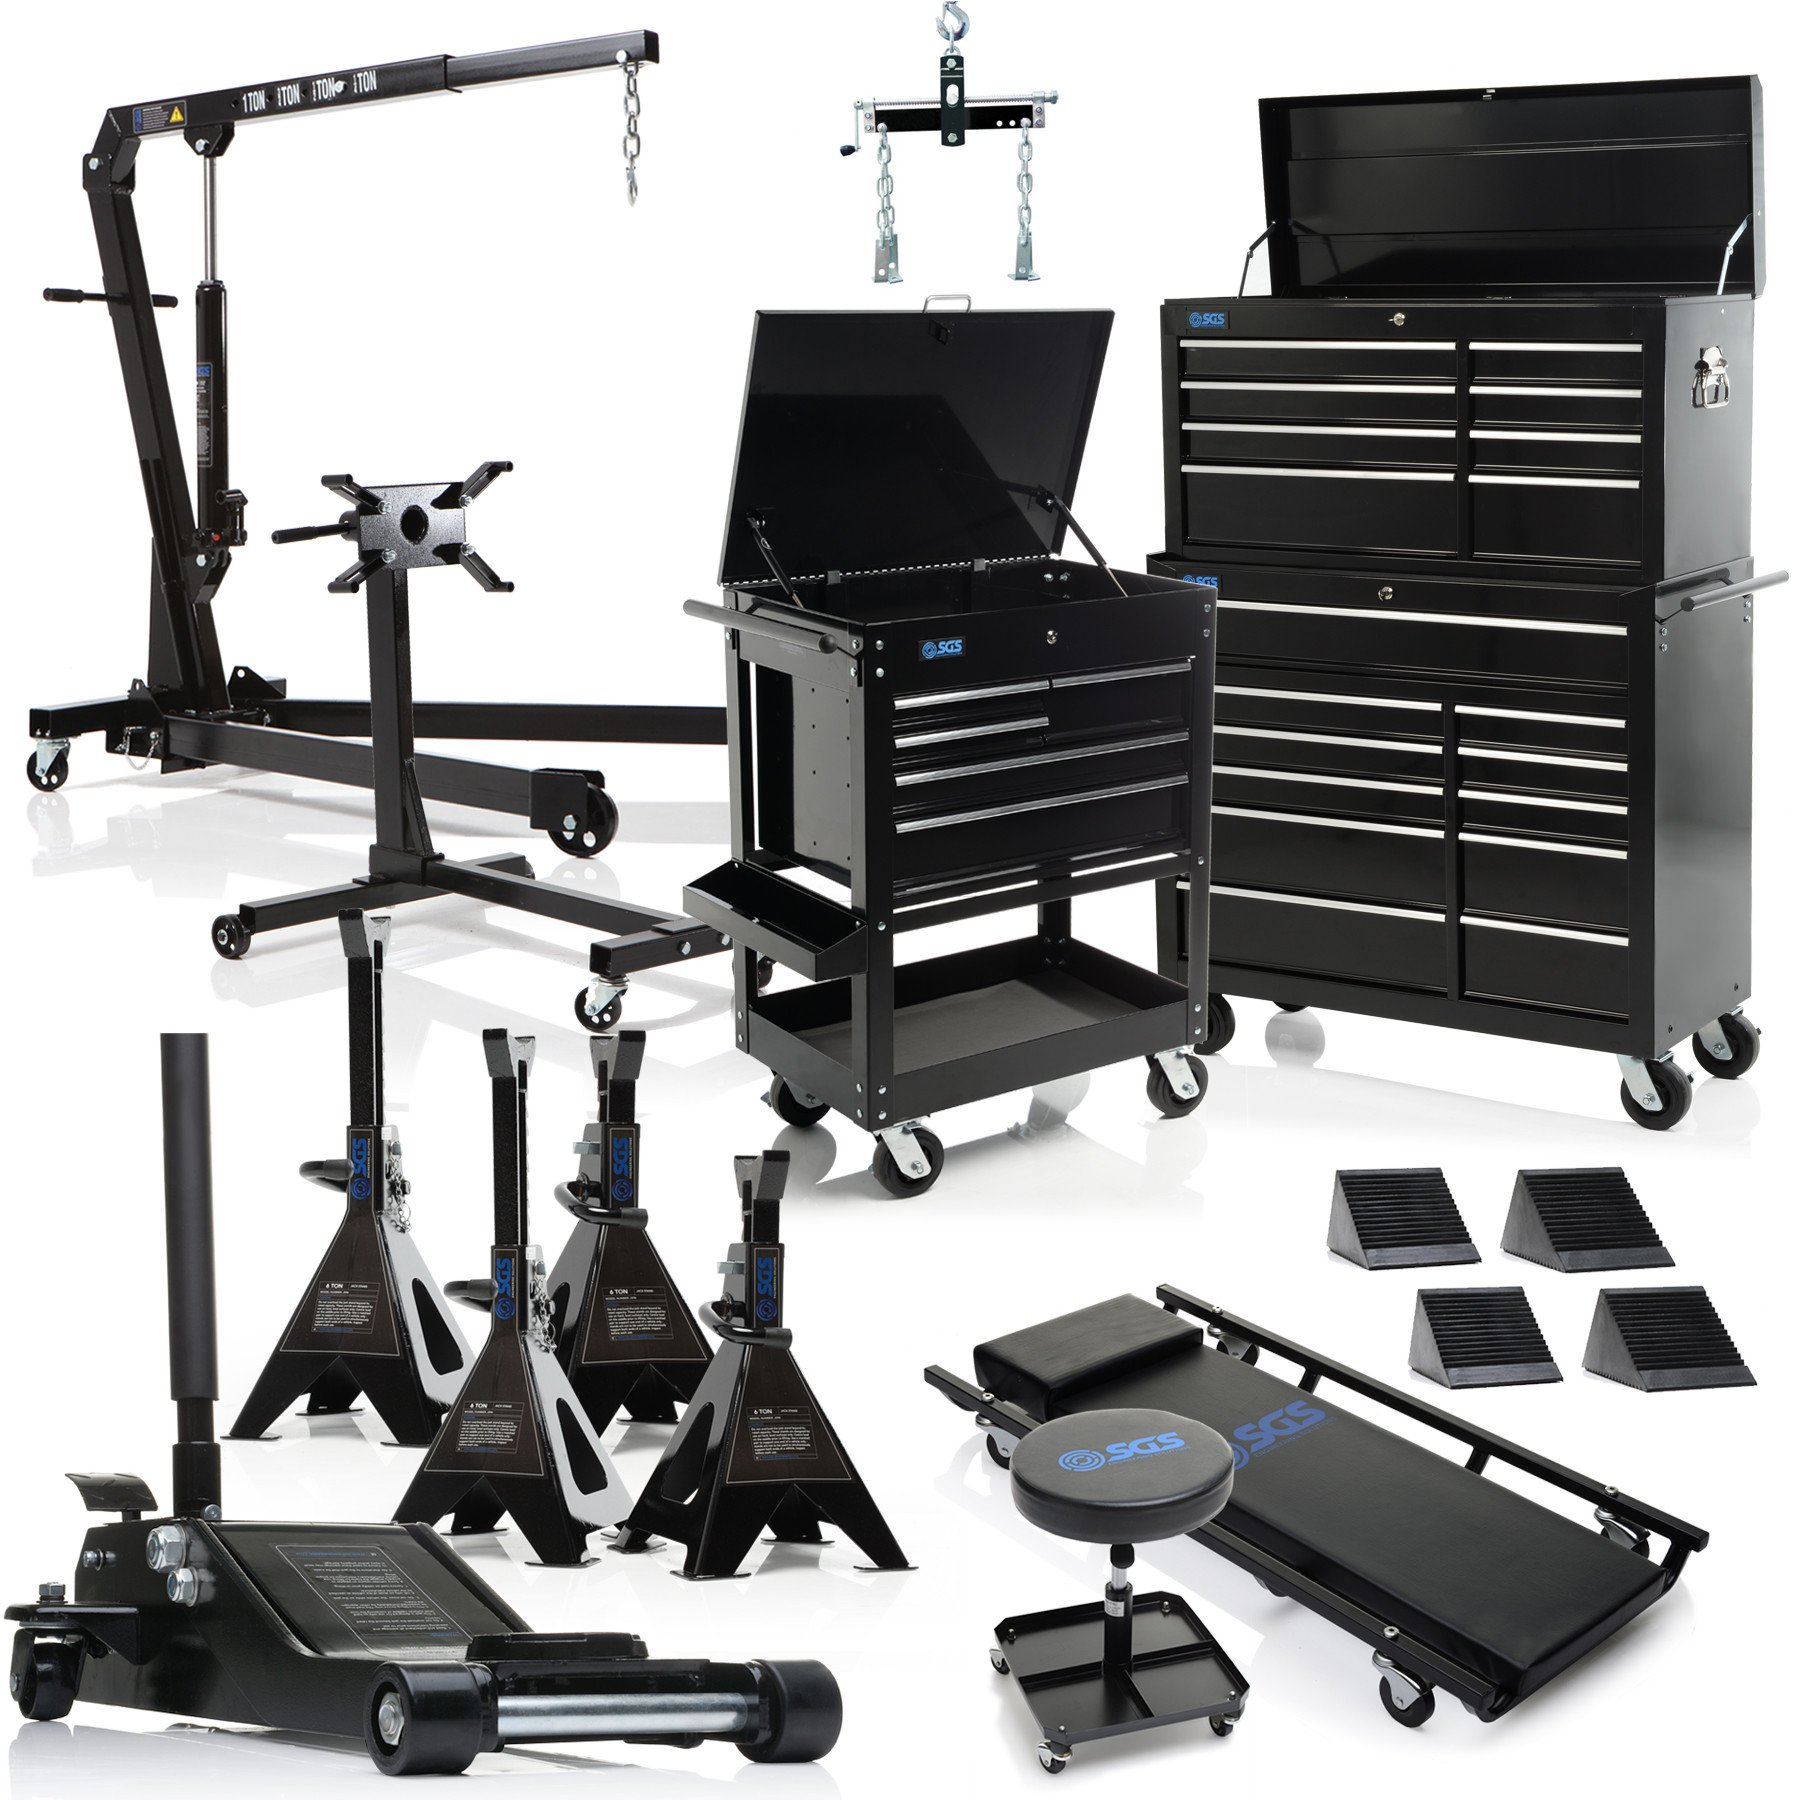 Professional Garage Equipment Bundle: Tool Chest, Jack, Engine Crane, Stand, Creeper & More